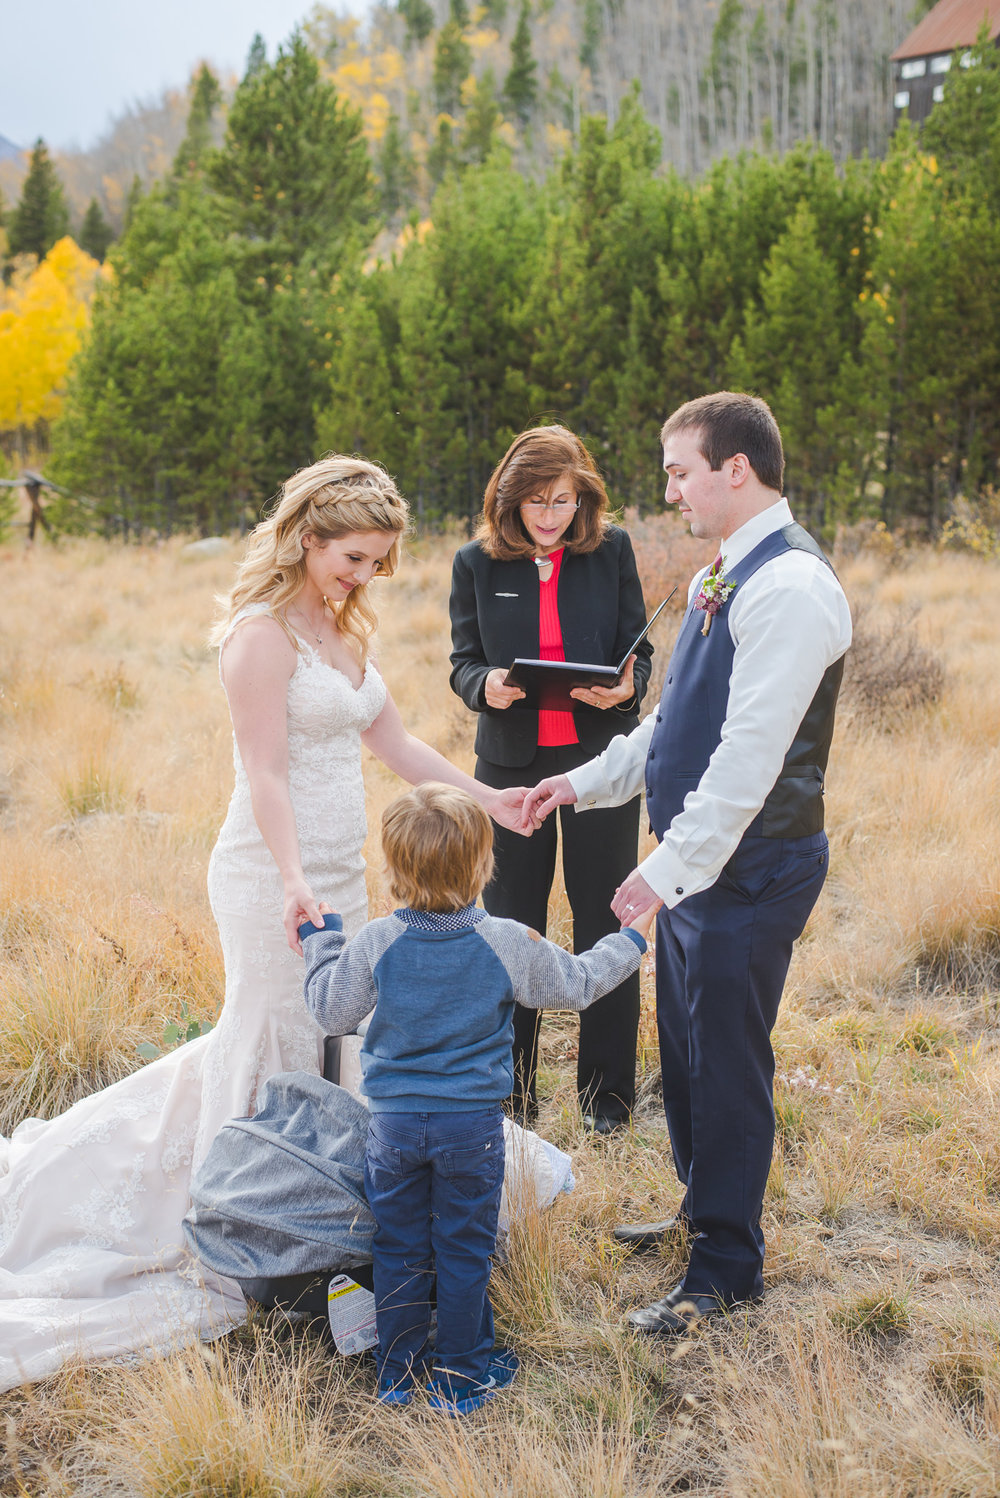 Autumn elopement in Breckenridge, Colorado | Family ceremony | Summit Mountain Weddings